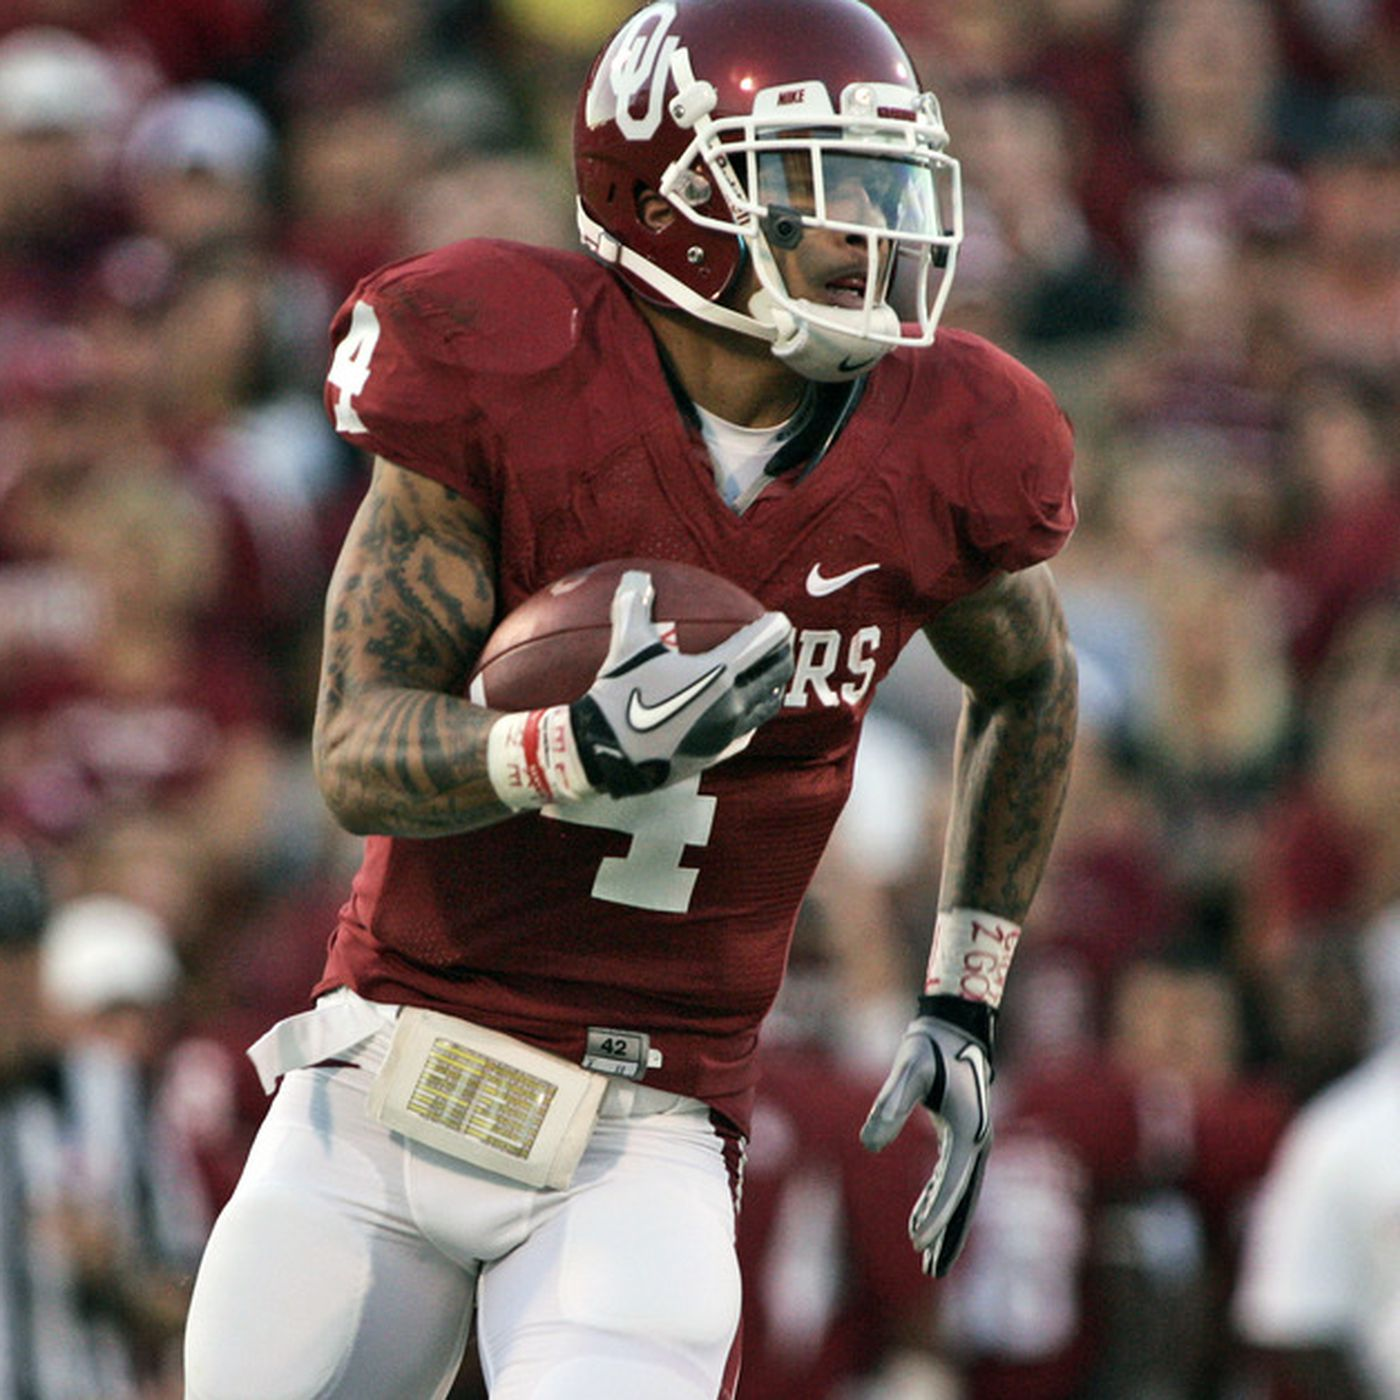 2013 NFL Draft Results: Kenny Stills to New Orleans Saints at No ...